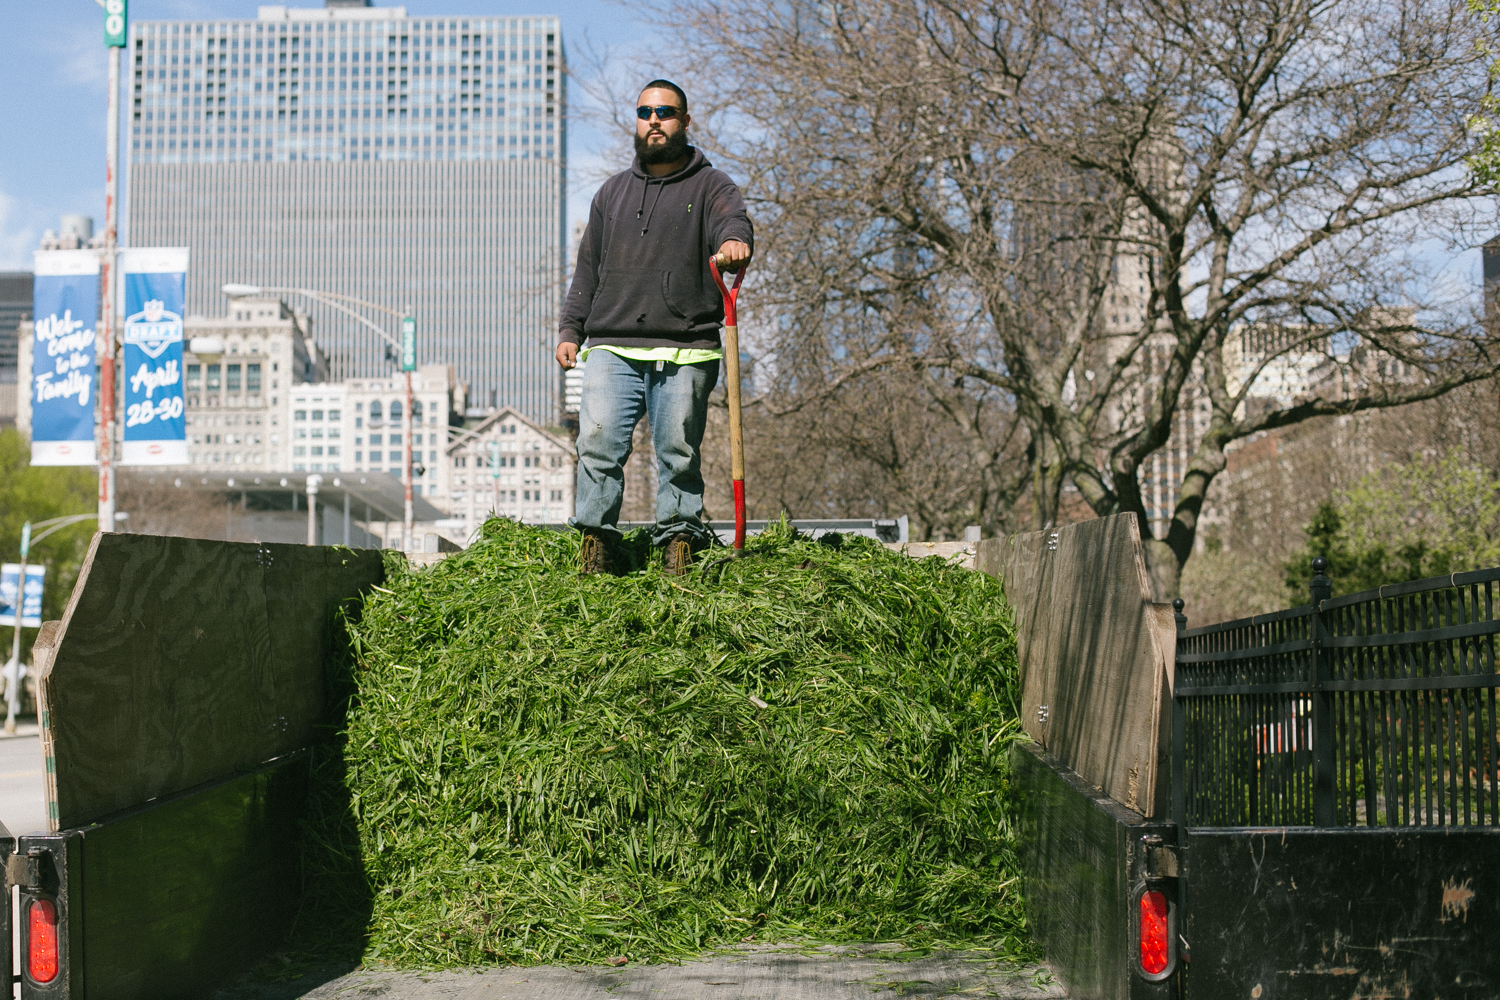 Ramera stands on top of a trailer load of grass clippings after smashing them all down. He has a full day of weed whacking ahead of him. 23/24